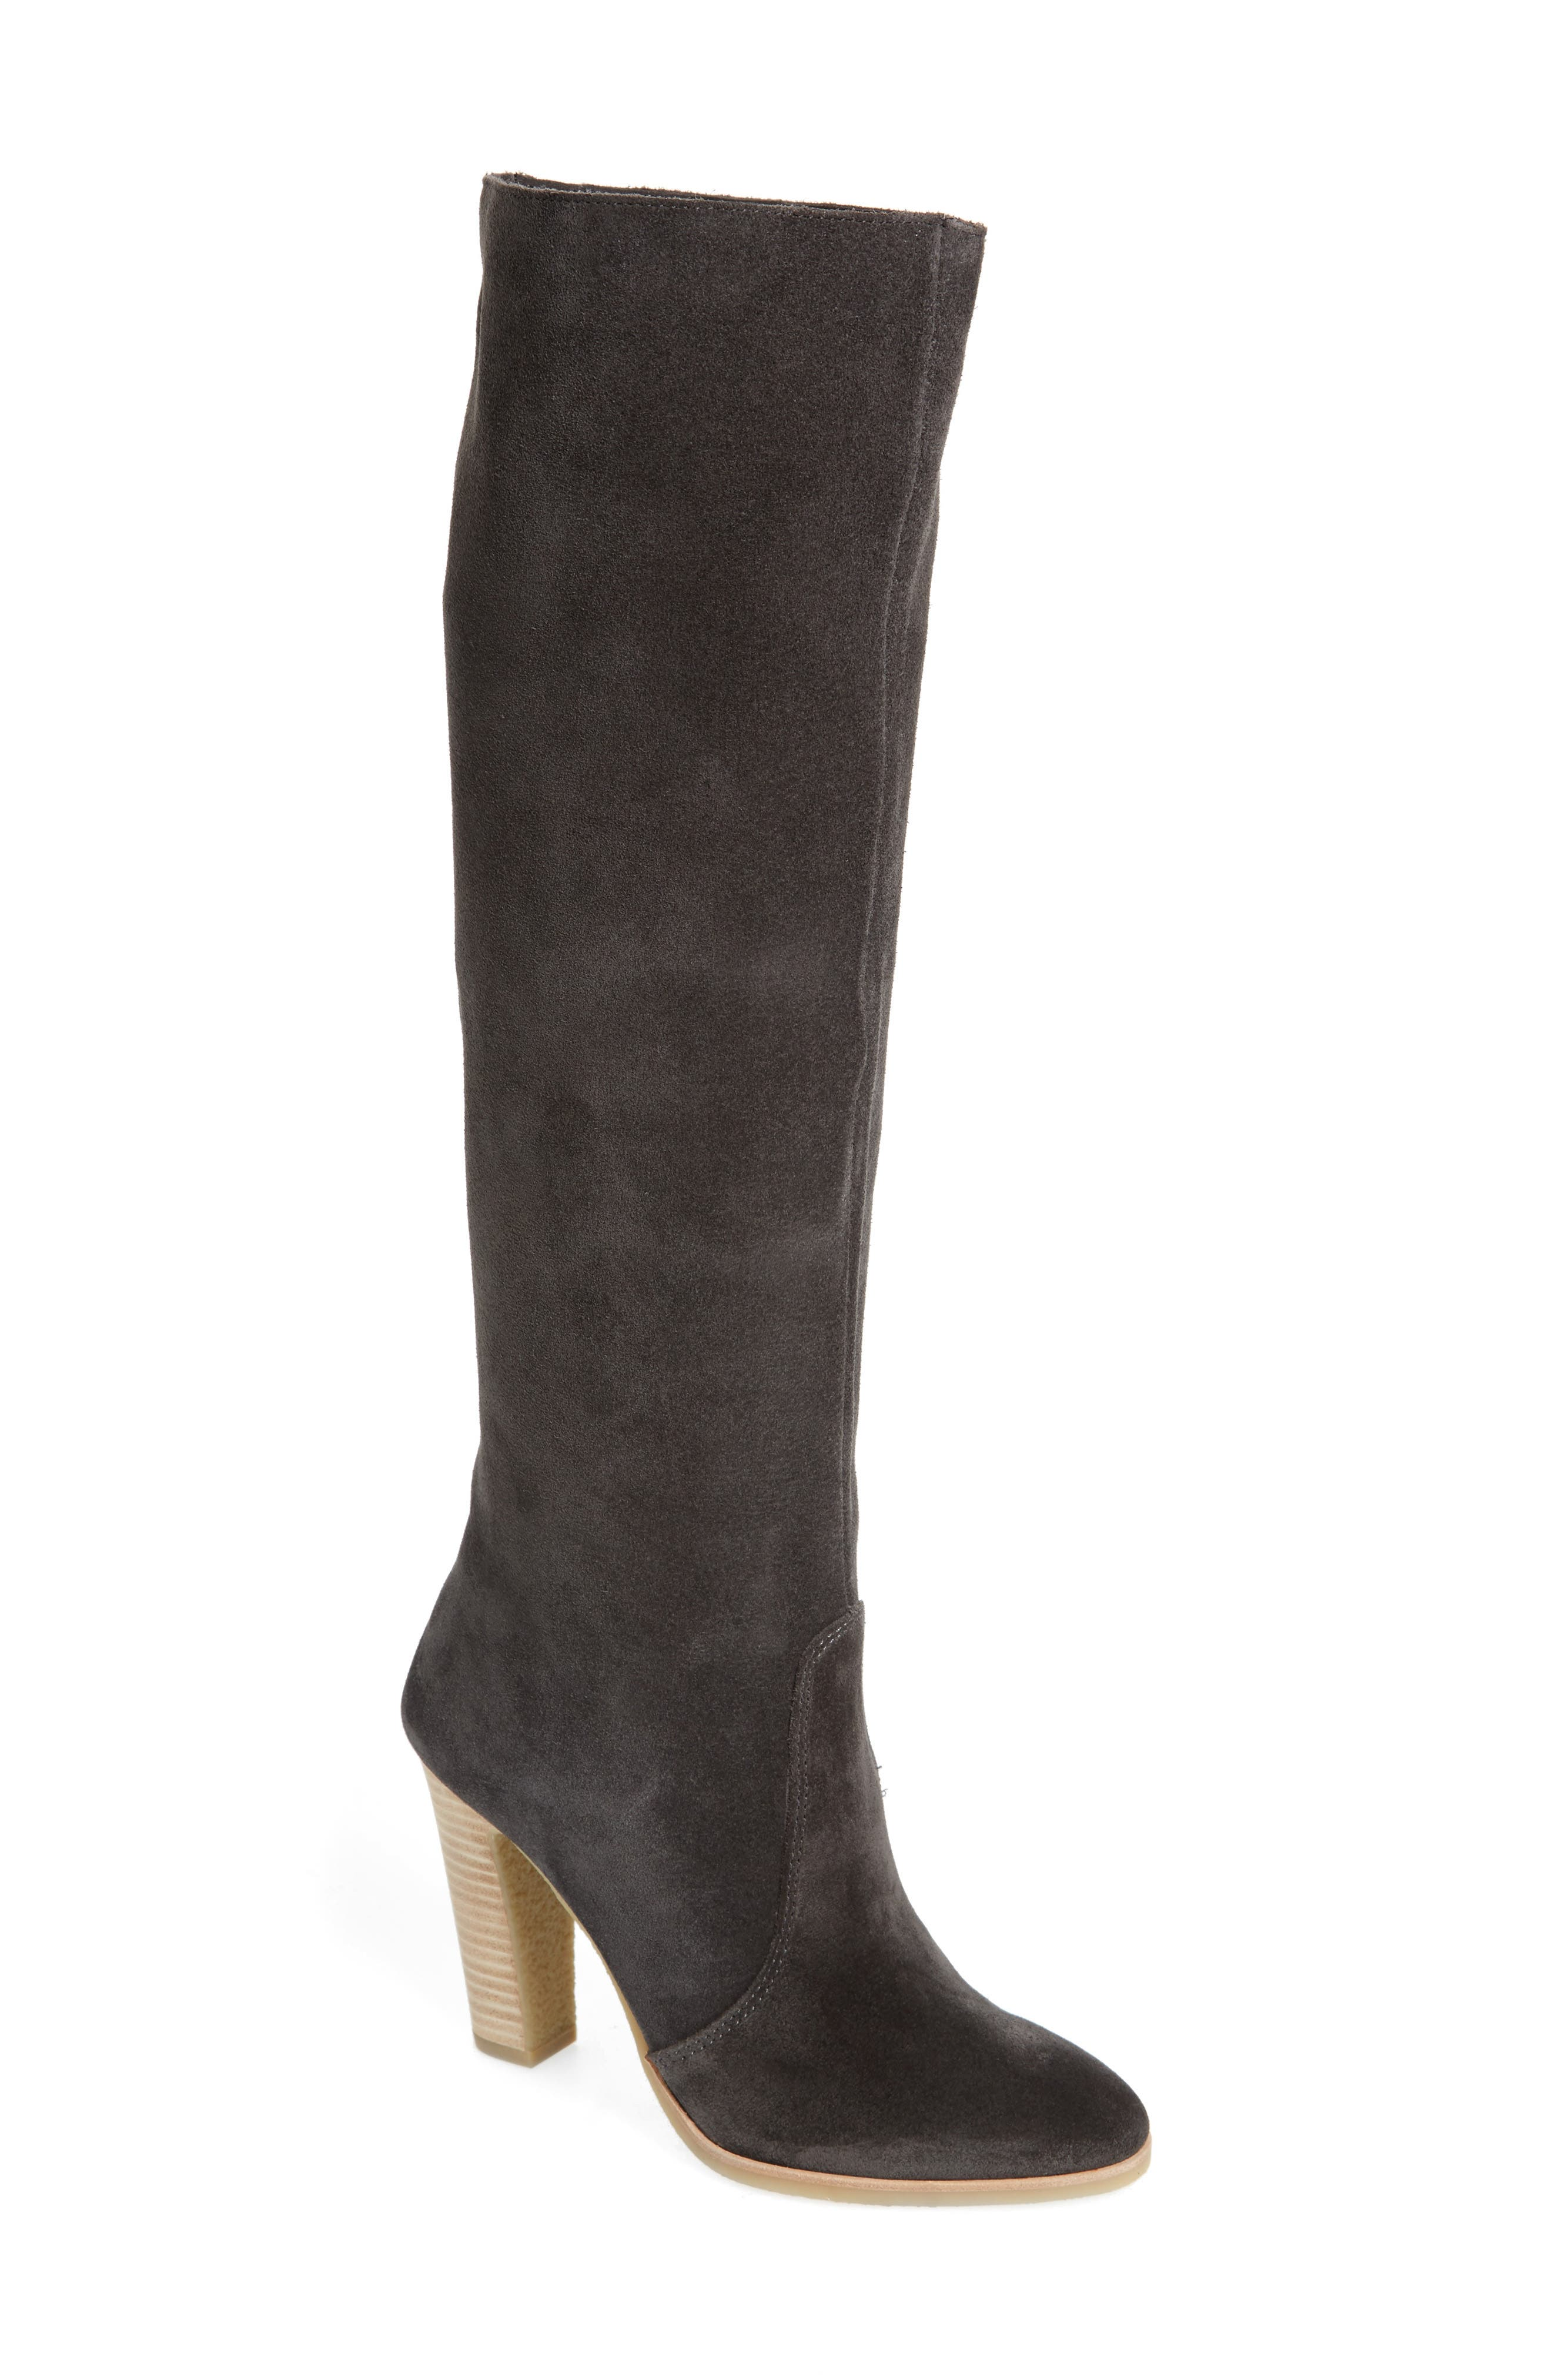 Celine Knee-High Boot,                             Main thumbnail 1, color,                             Anthracite Suede